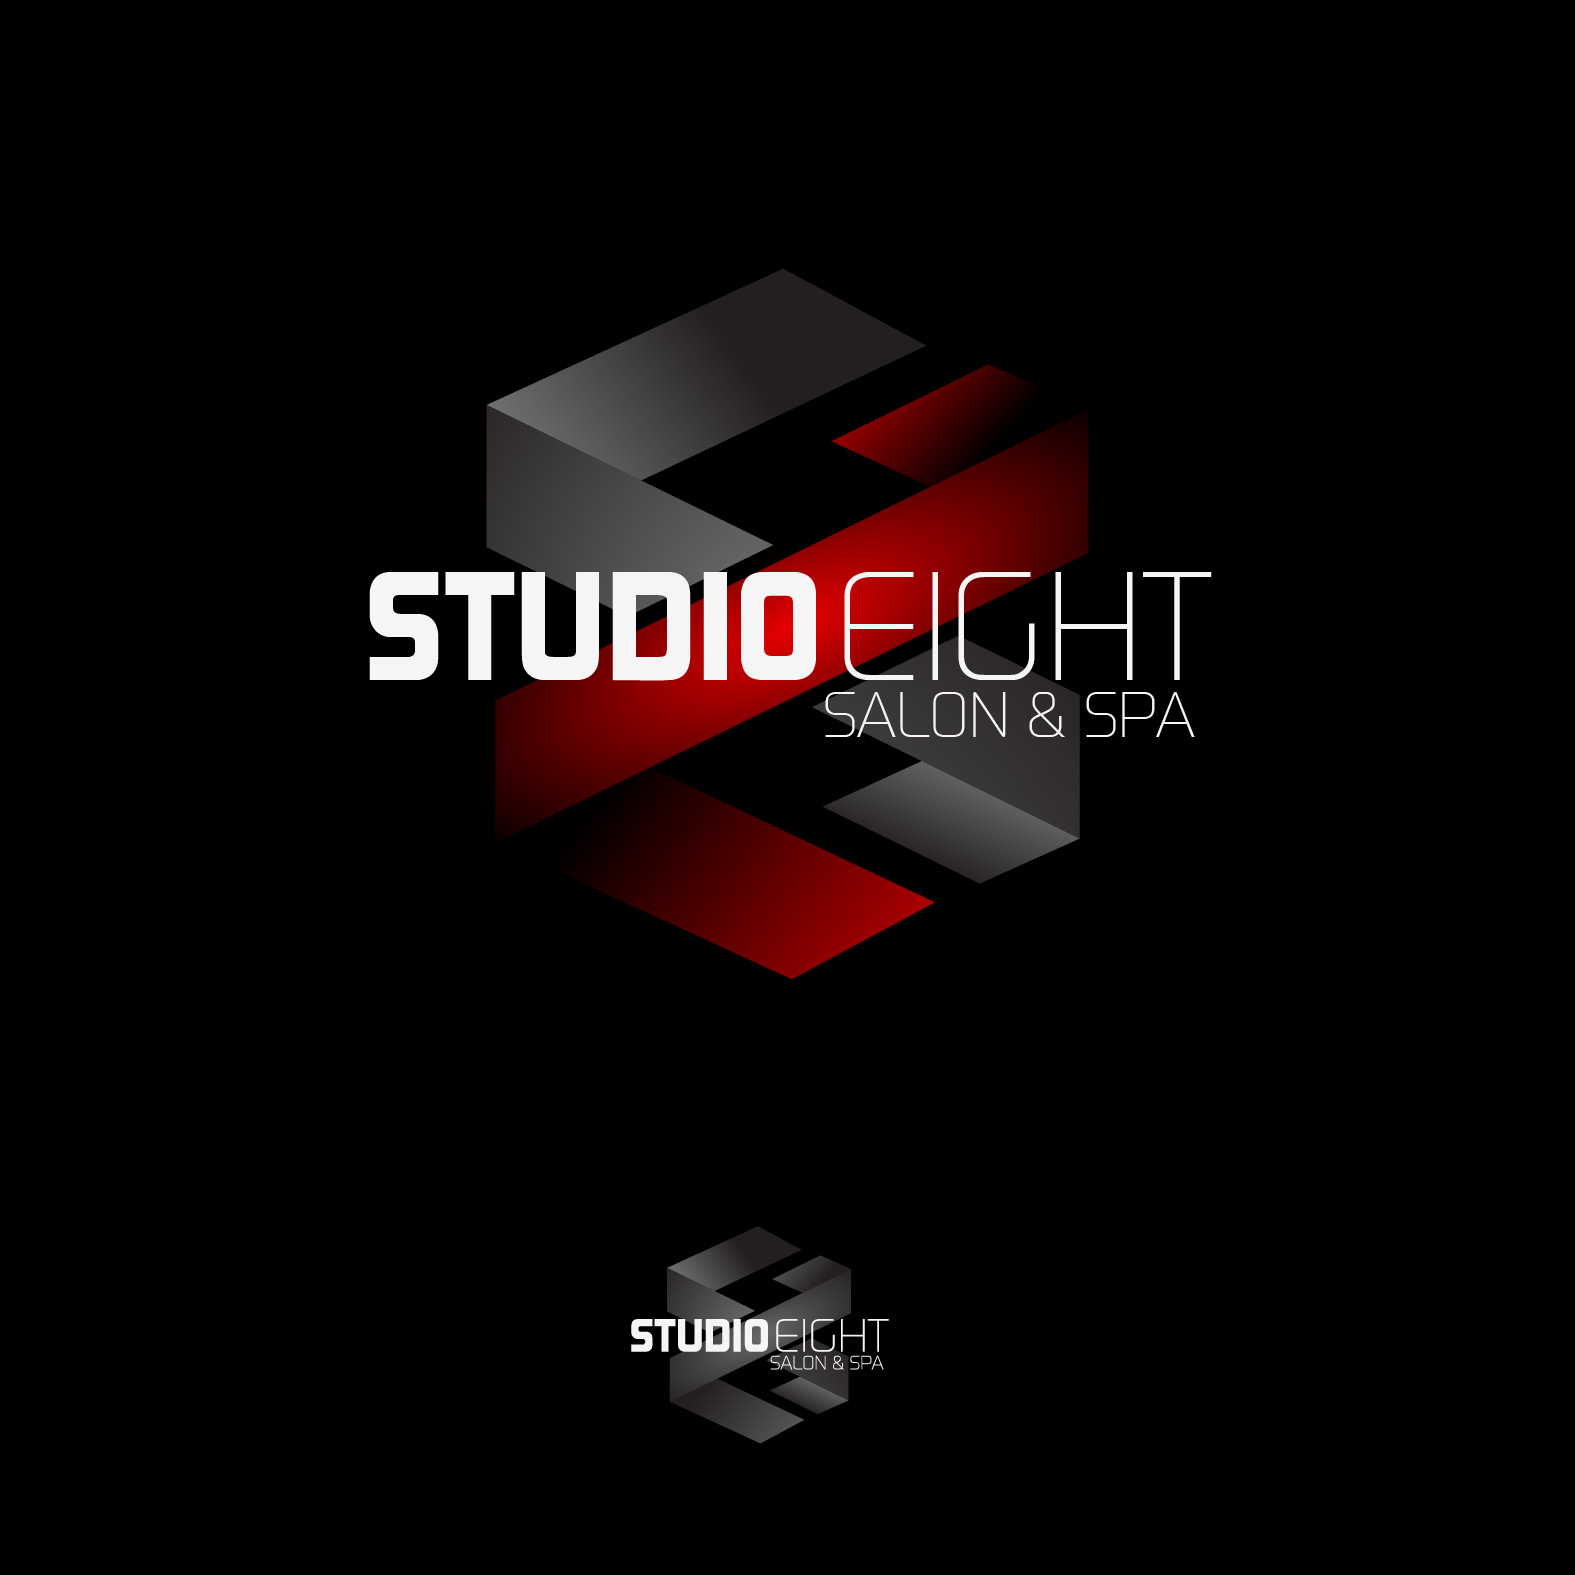 Logo Design by lagalag - Entry No. 66 in the Logo Design Contest Captivating Logo Design for studio eight salon & spa.